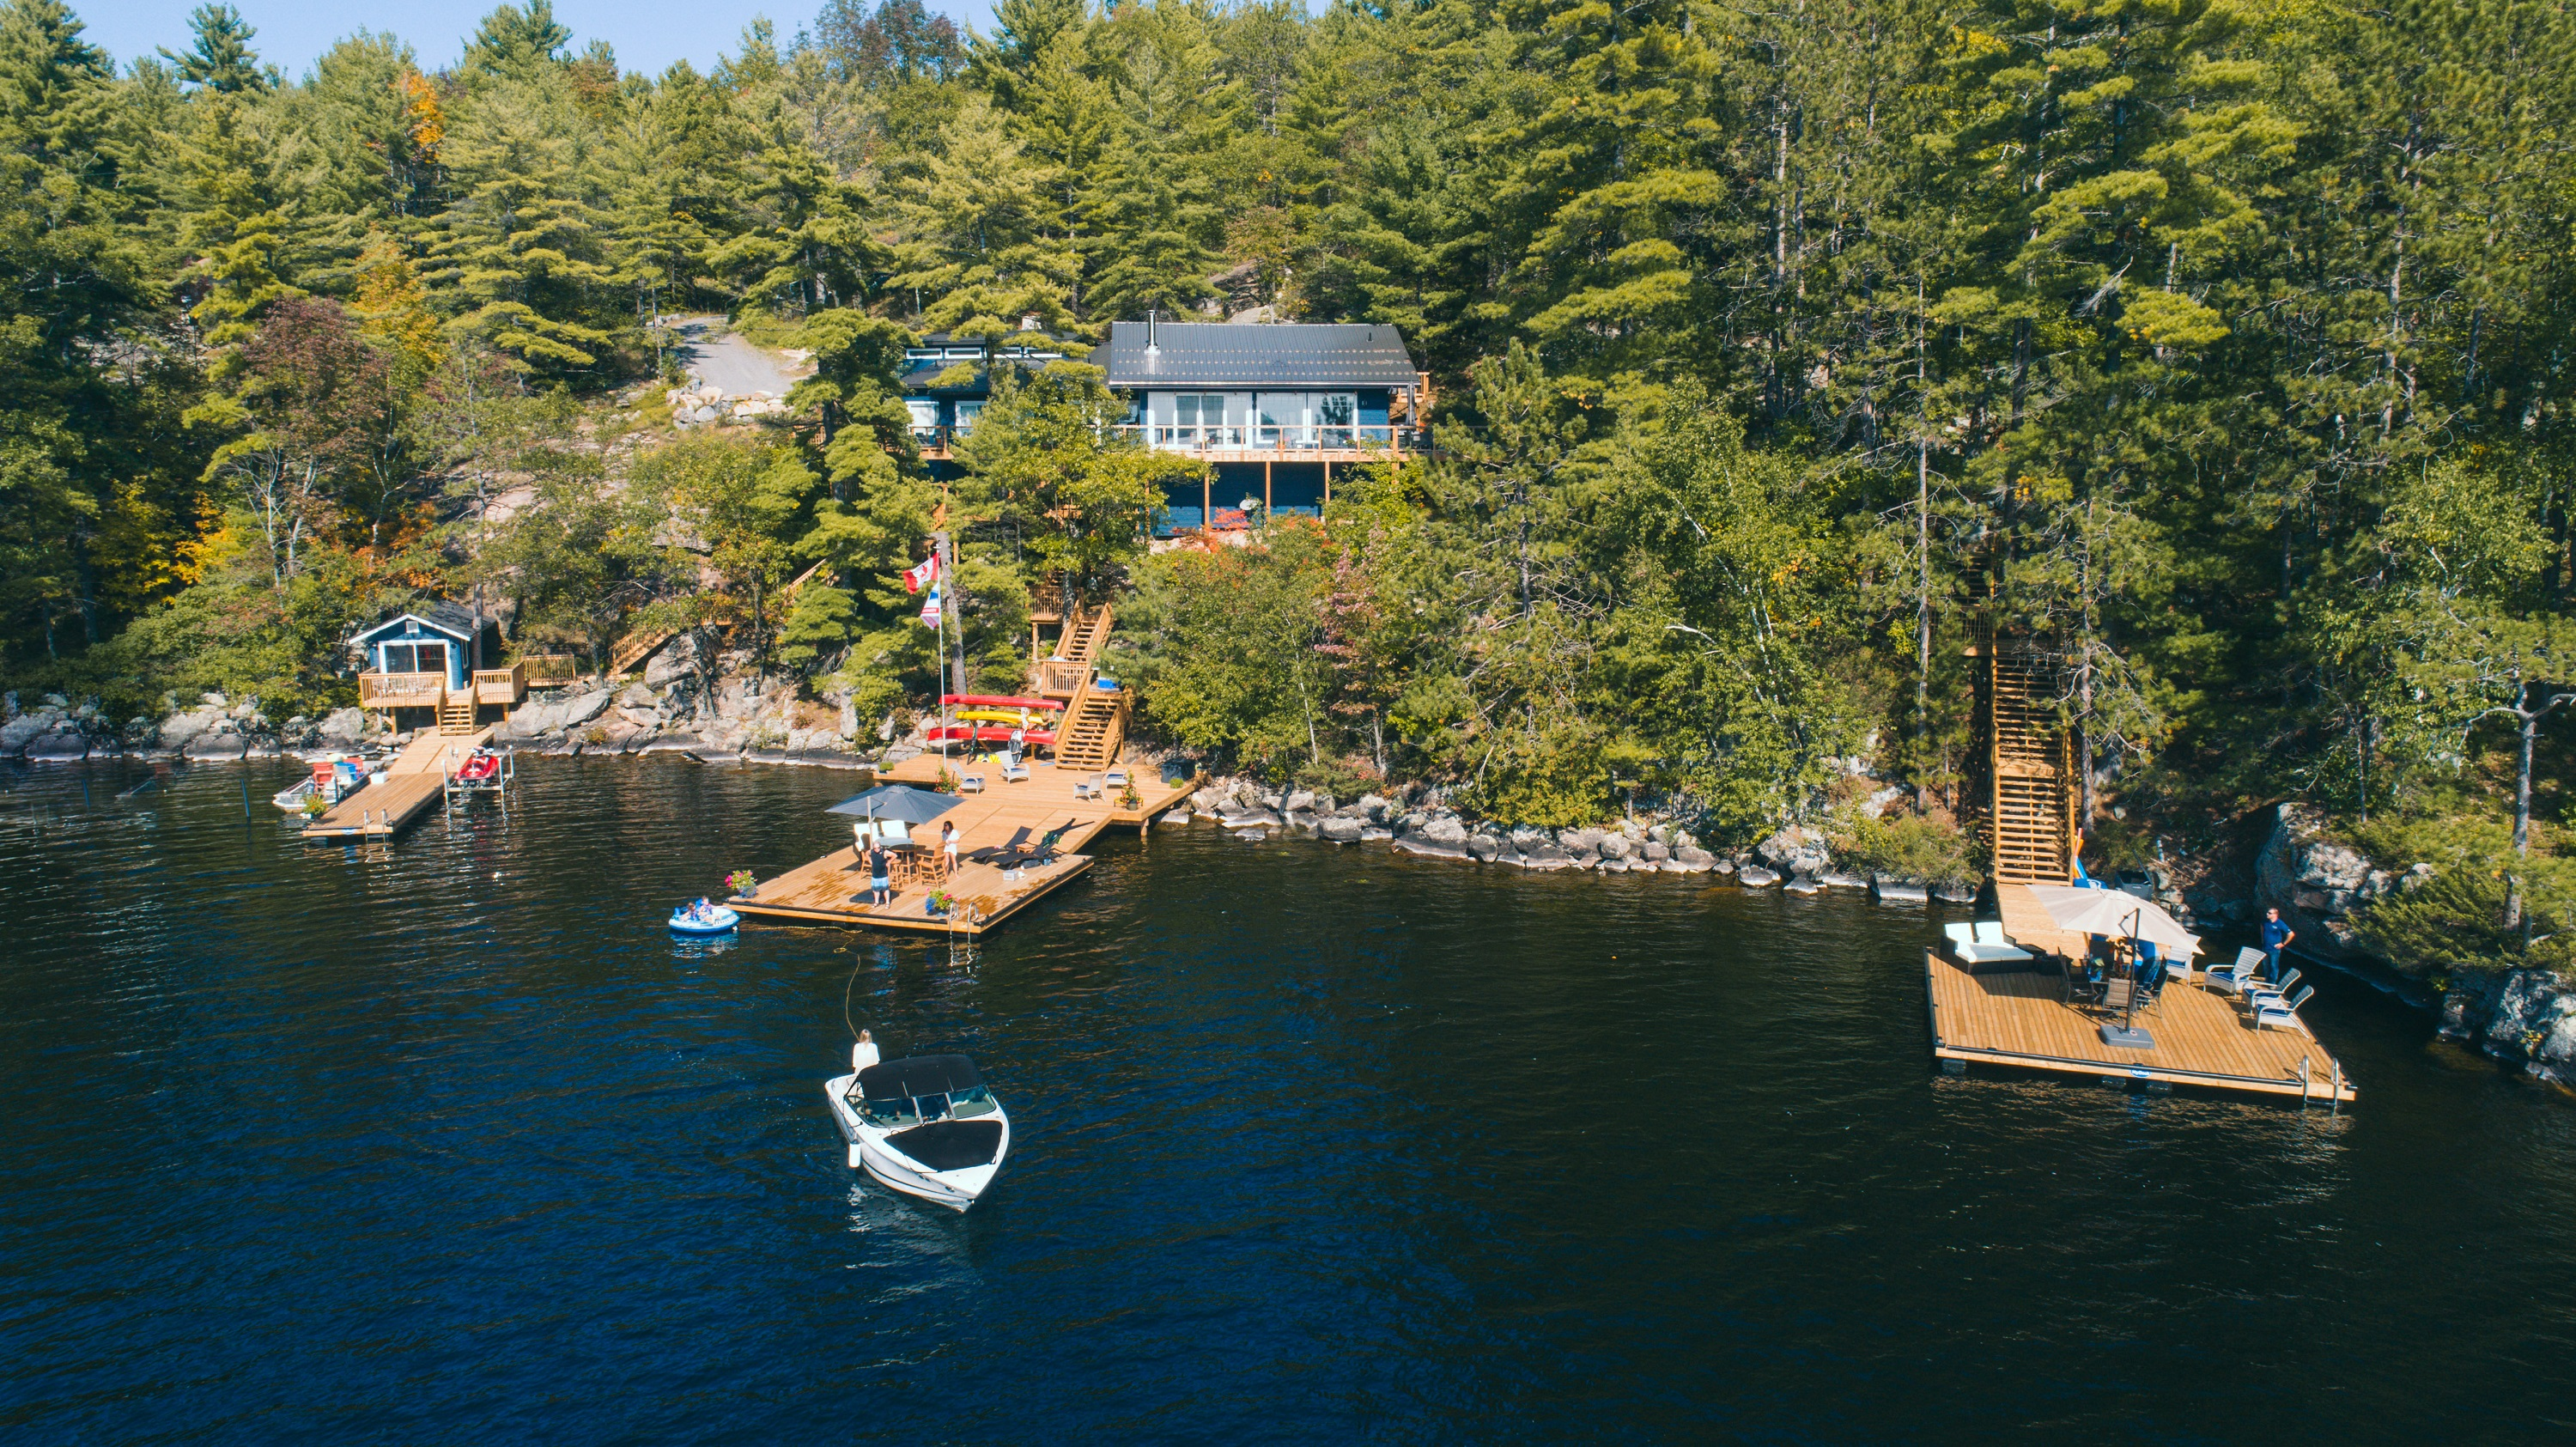 Lake Muskoka - SW Family Cottage offering with Traditional Flair & Contemporary Muskoka design